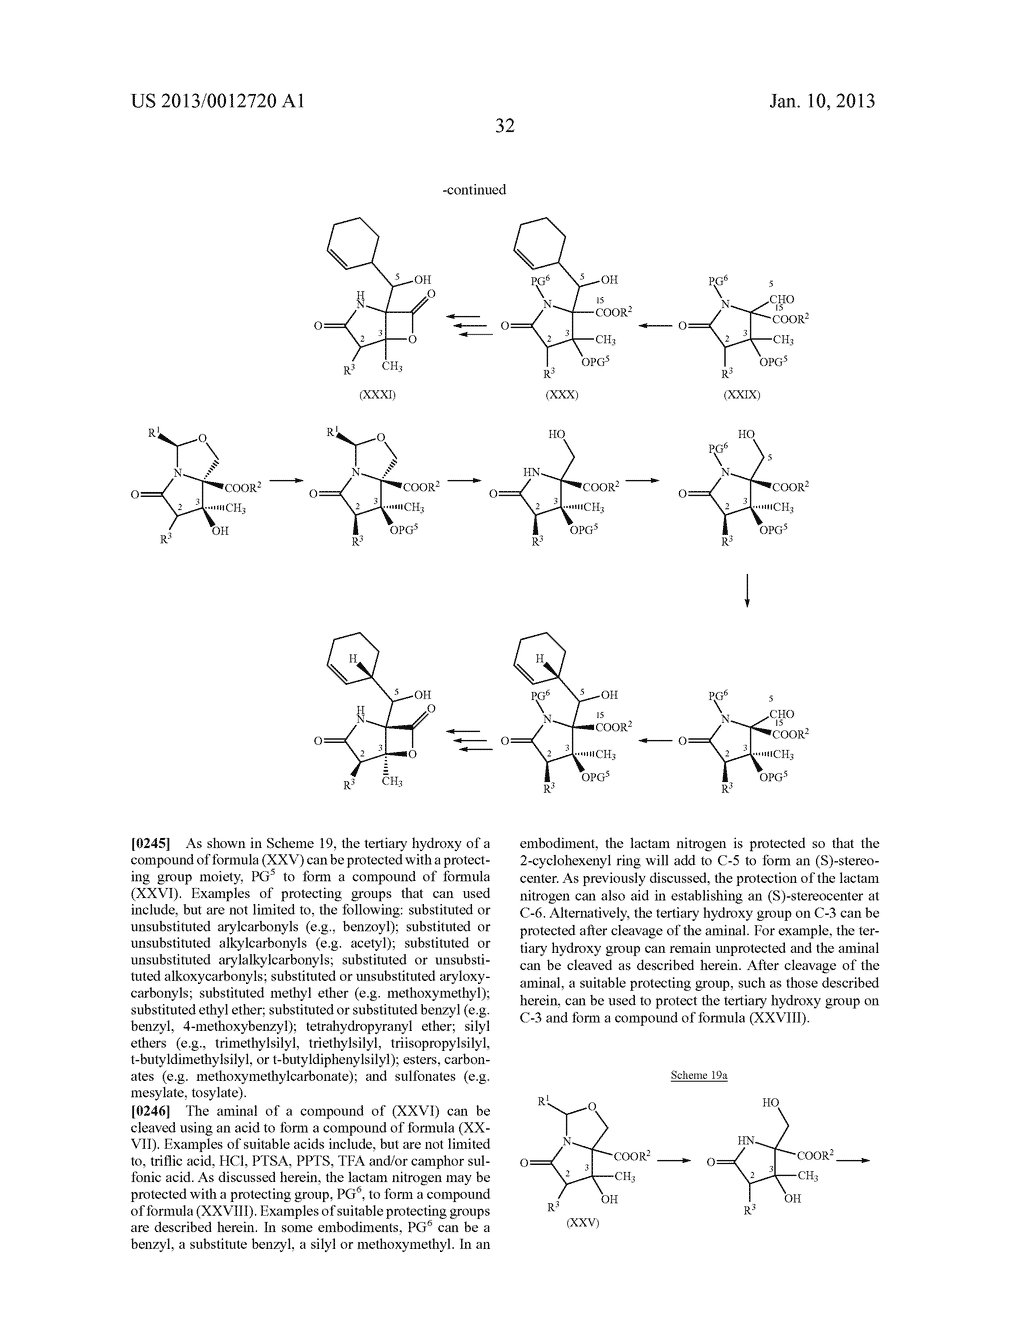 TOTAL SYNTHESIS OF SALINOSPORAMIDE A AND ANALOGS THEREOF - diagram, schematic, and image 94